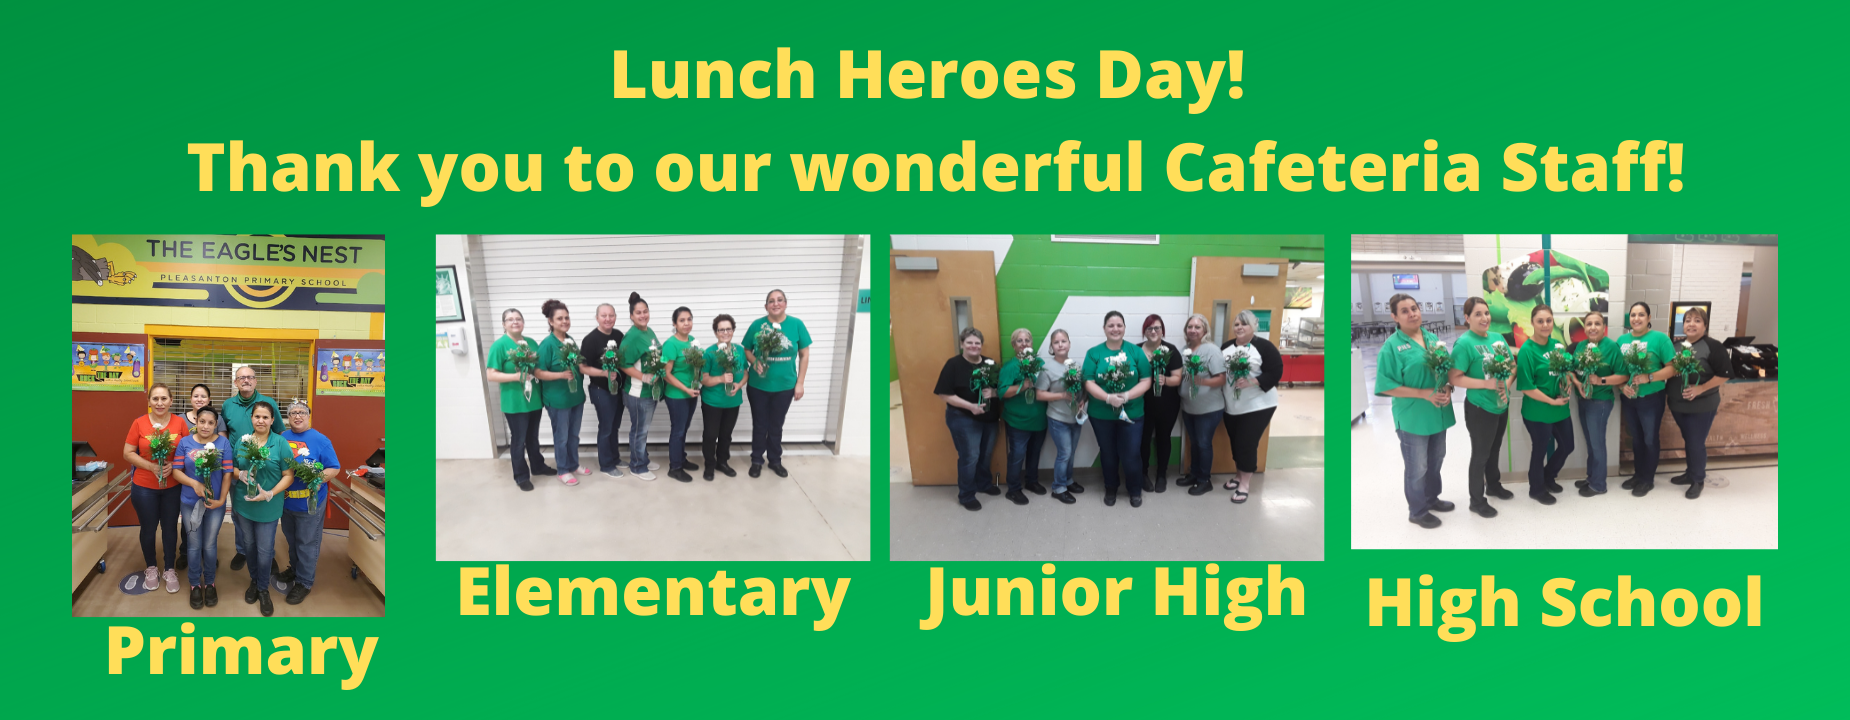 Lunch Heroes Day